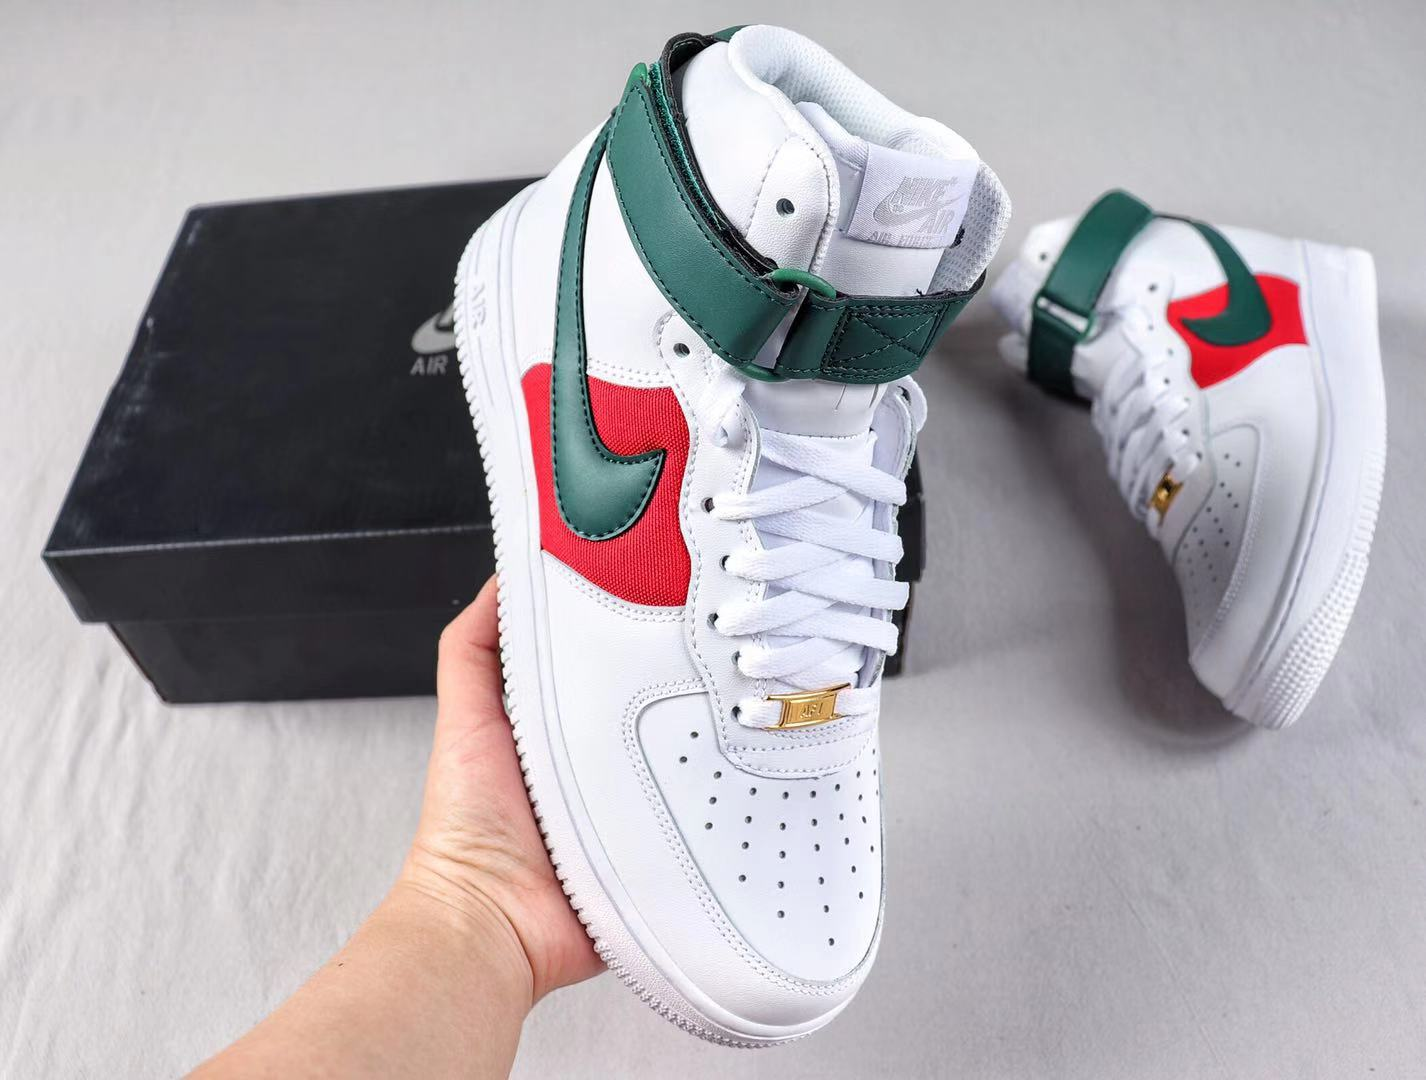 Nike Air Force 1 High White/Green-Red Fashion Sneakers To Buy CK4580-100